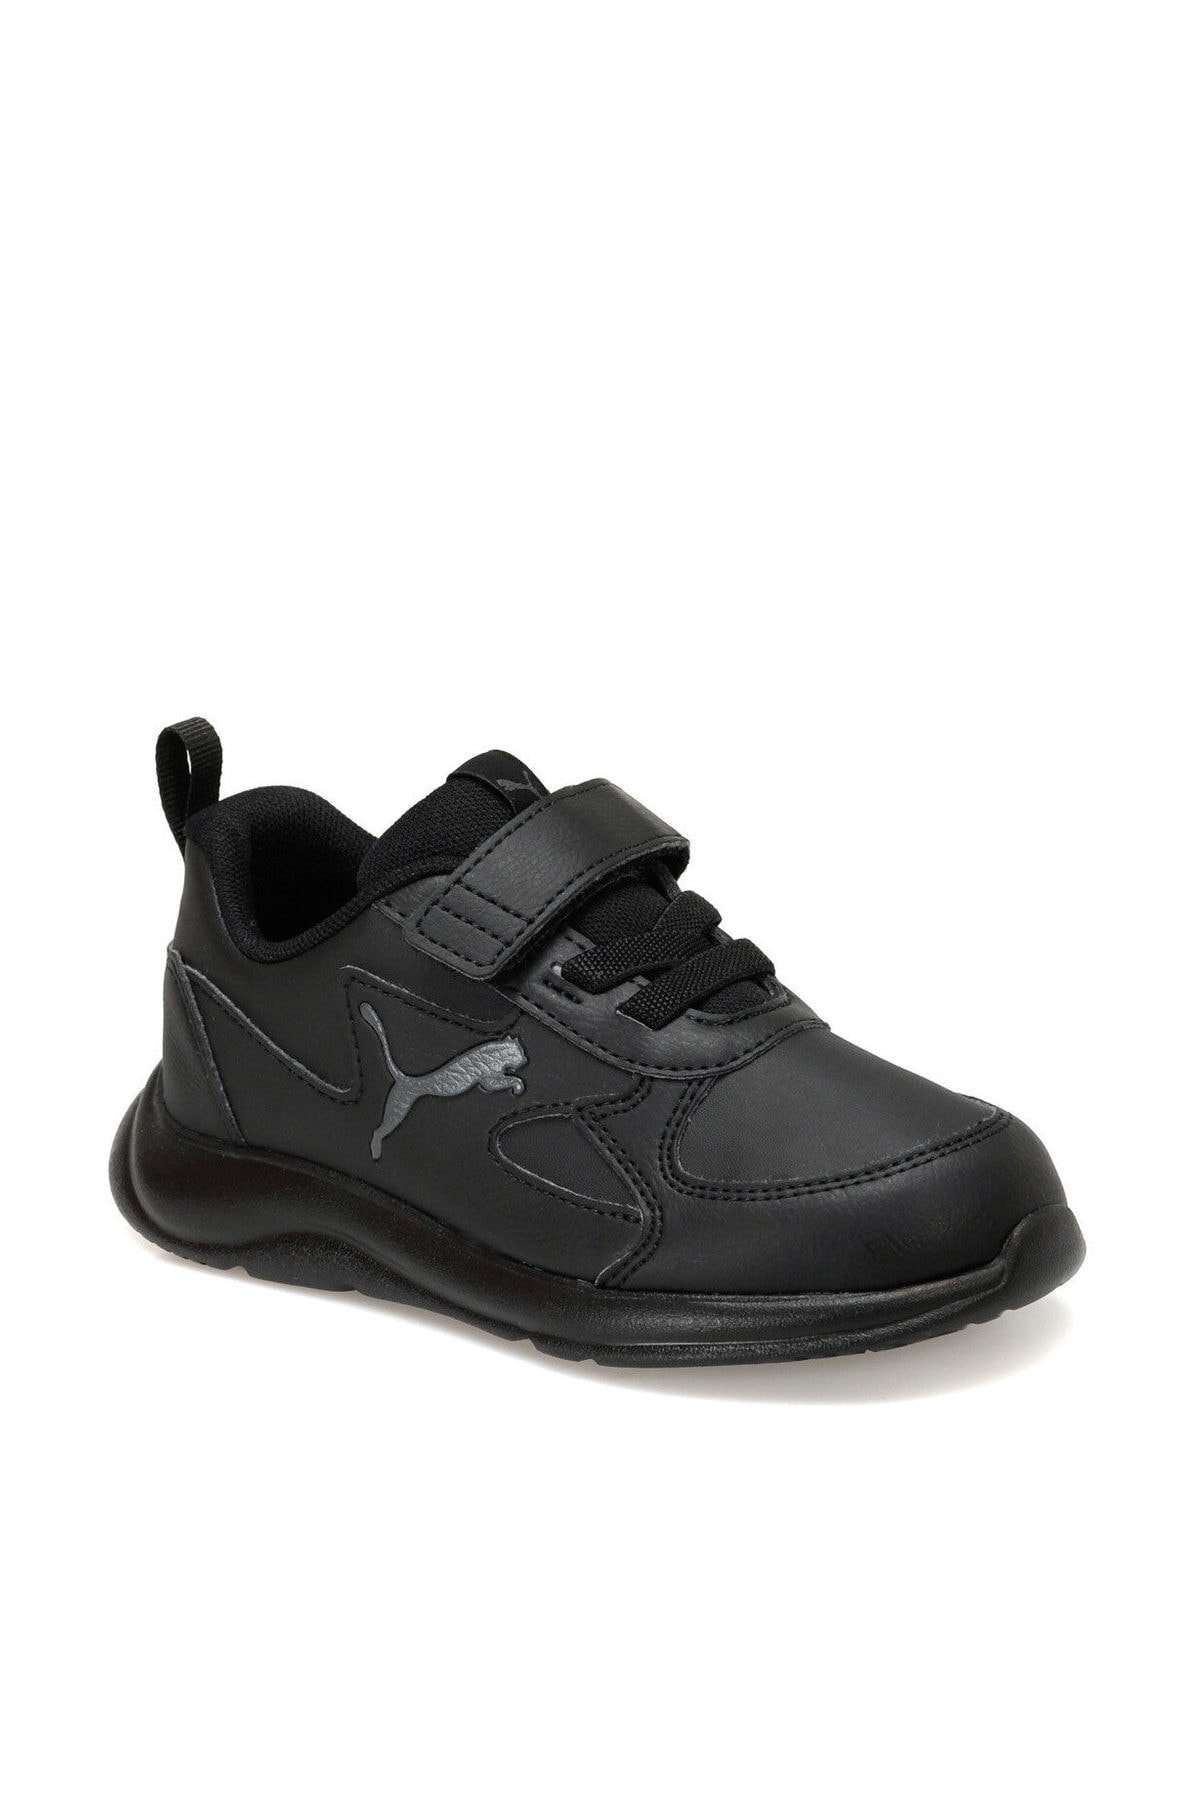 Puma Kids Puma Fun Racer SL AC PS Puma Black-High 1